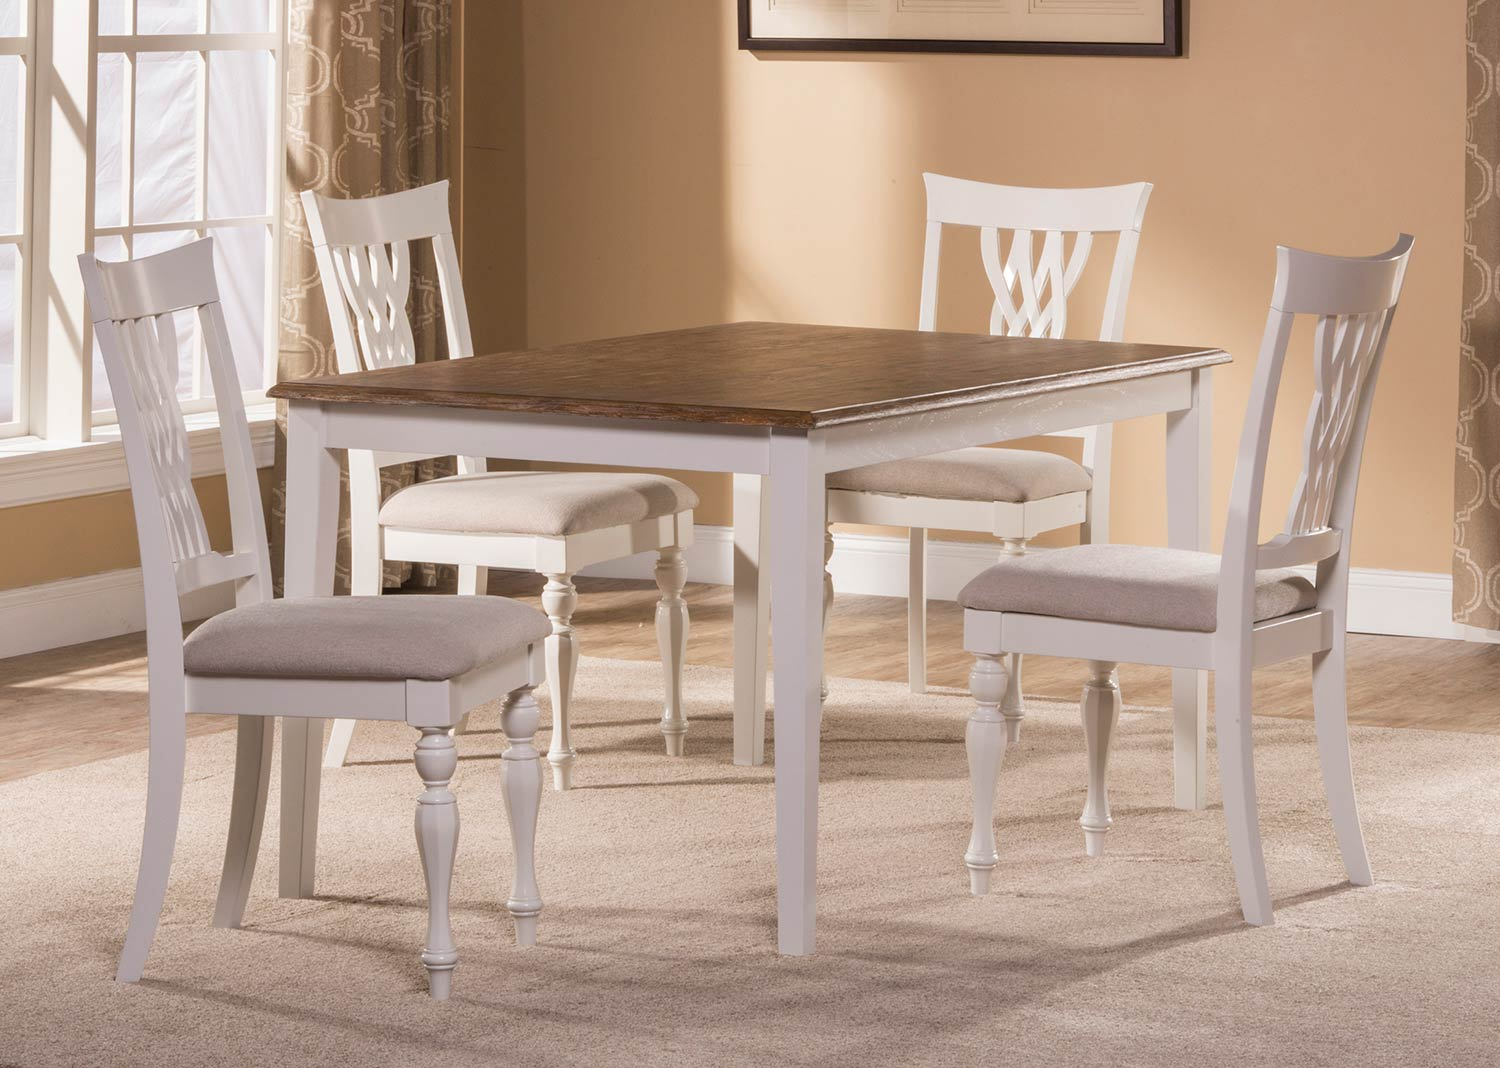 Hillsdale Bayberry-Embassy 5-Piece Rectangle Dining Set - White